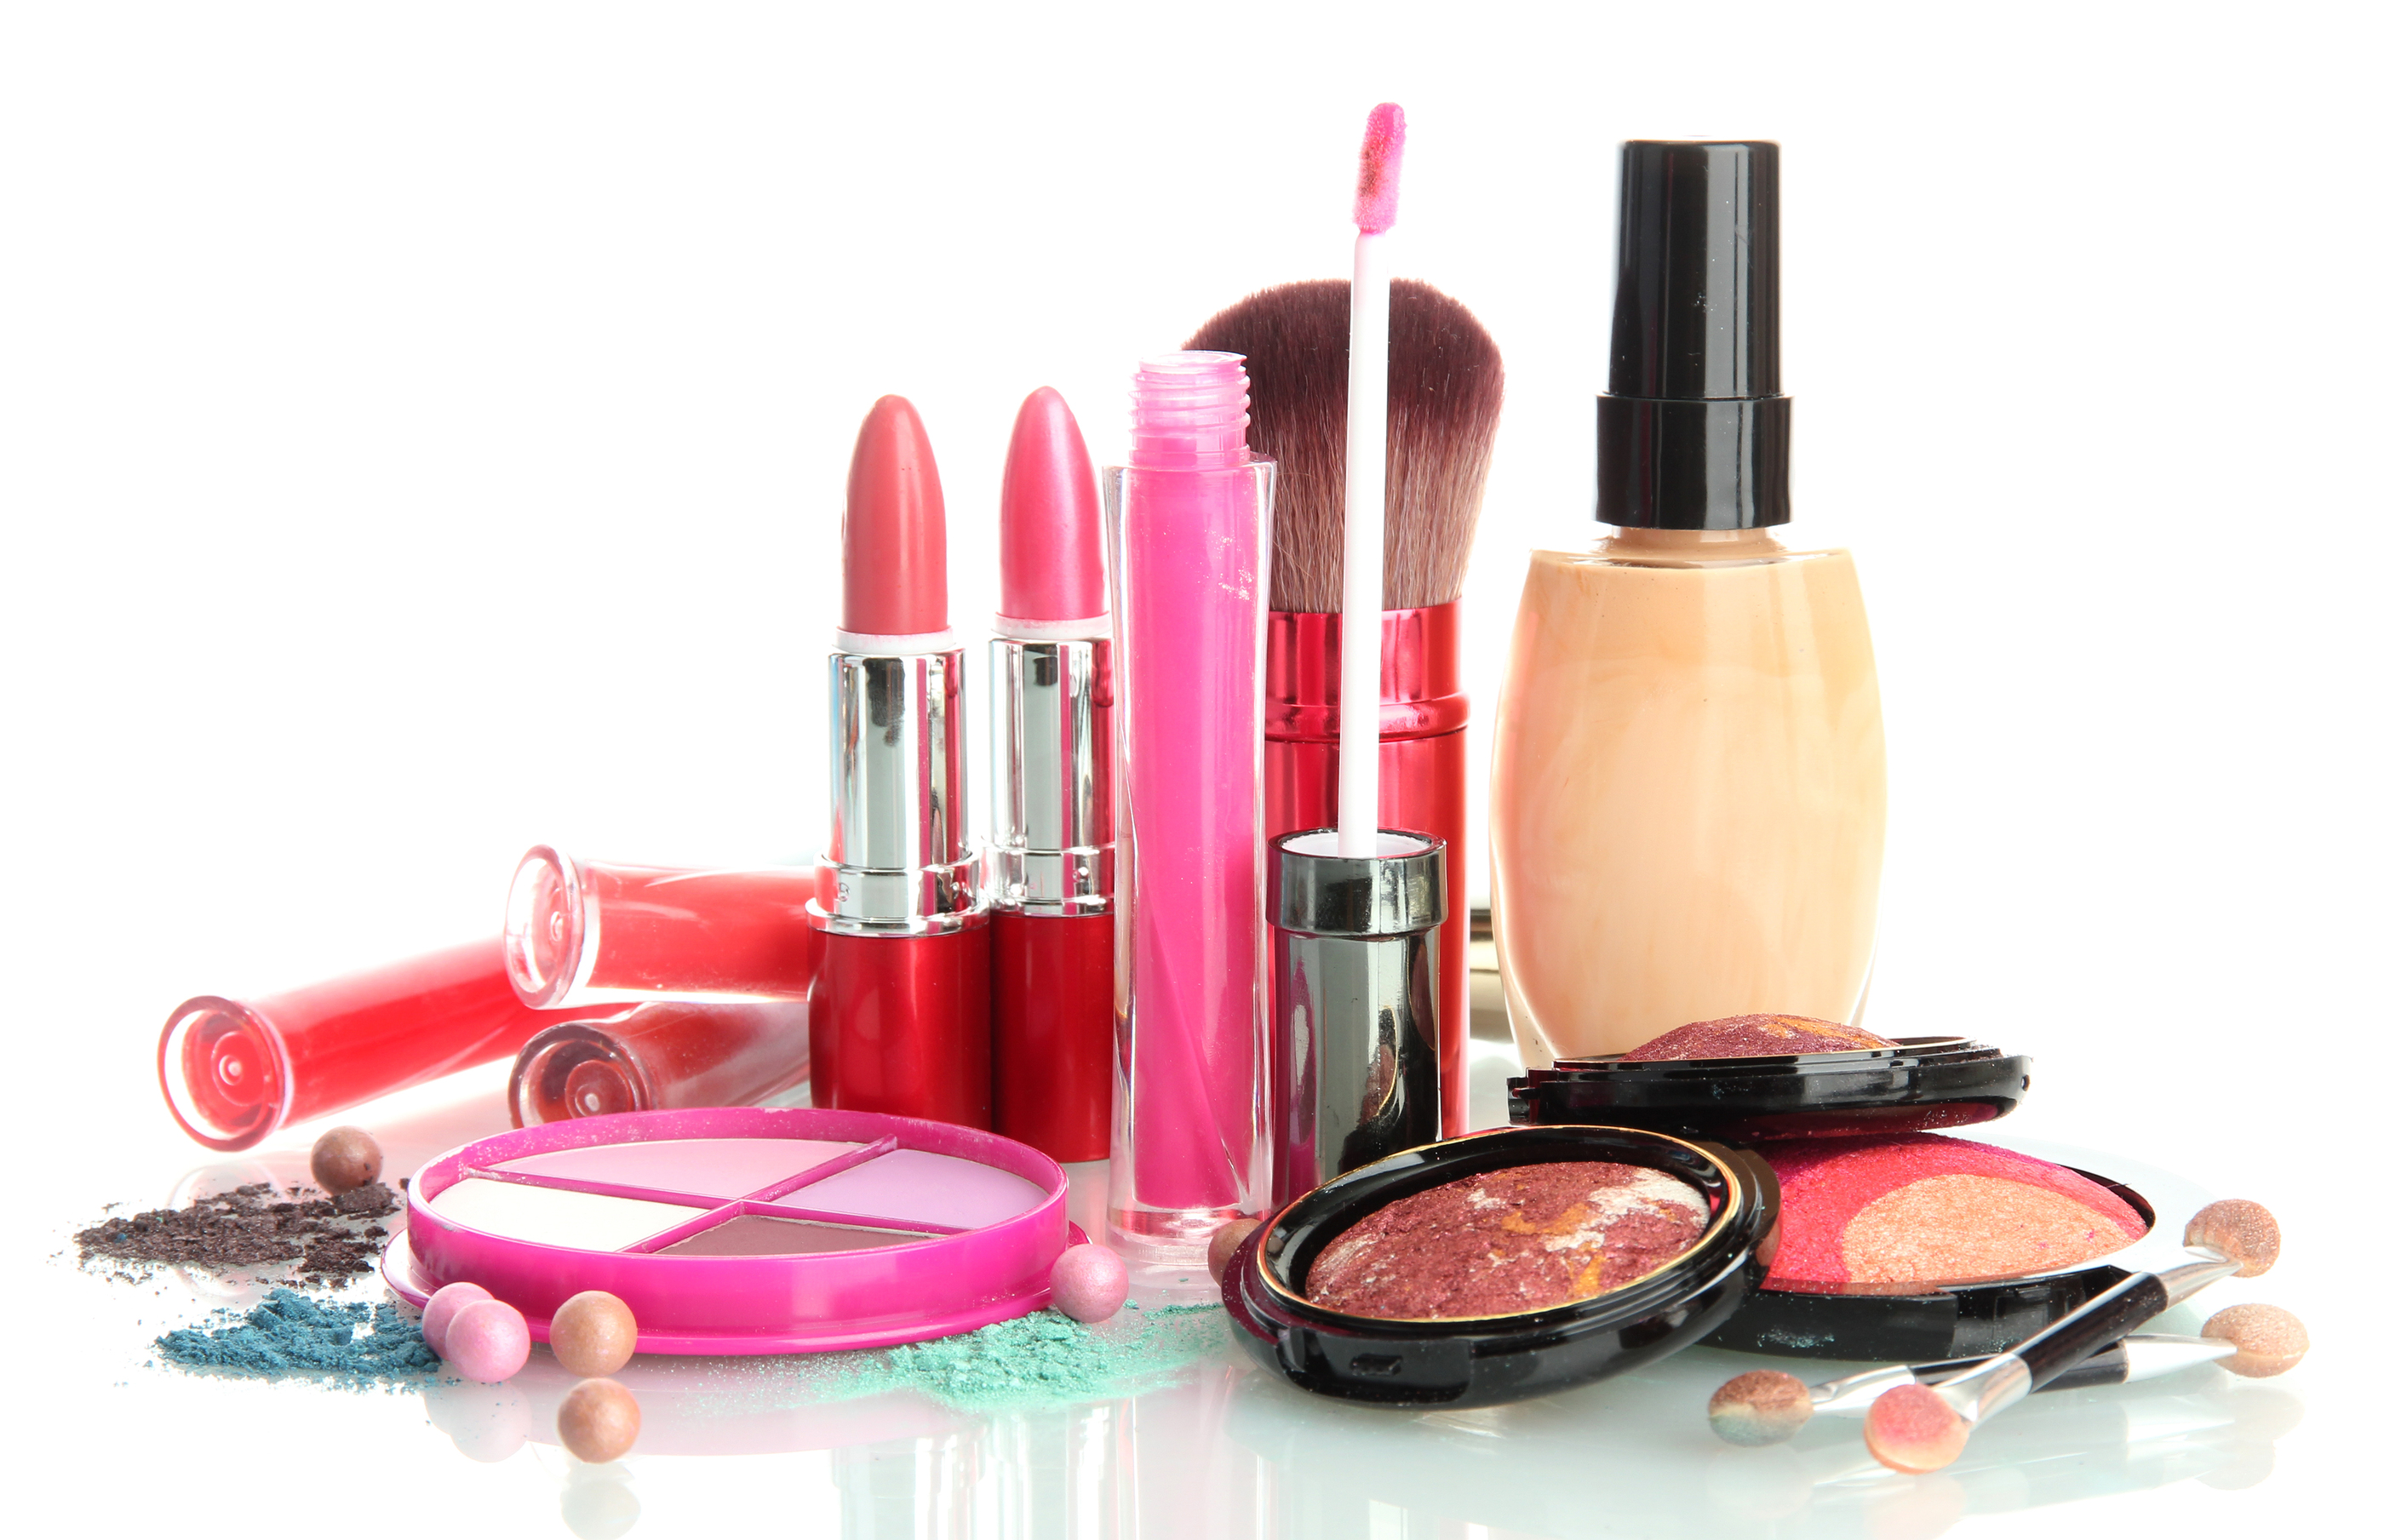 Save your Time and Money by Buying Cosmetics and Beauty Products Online